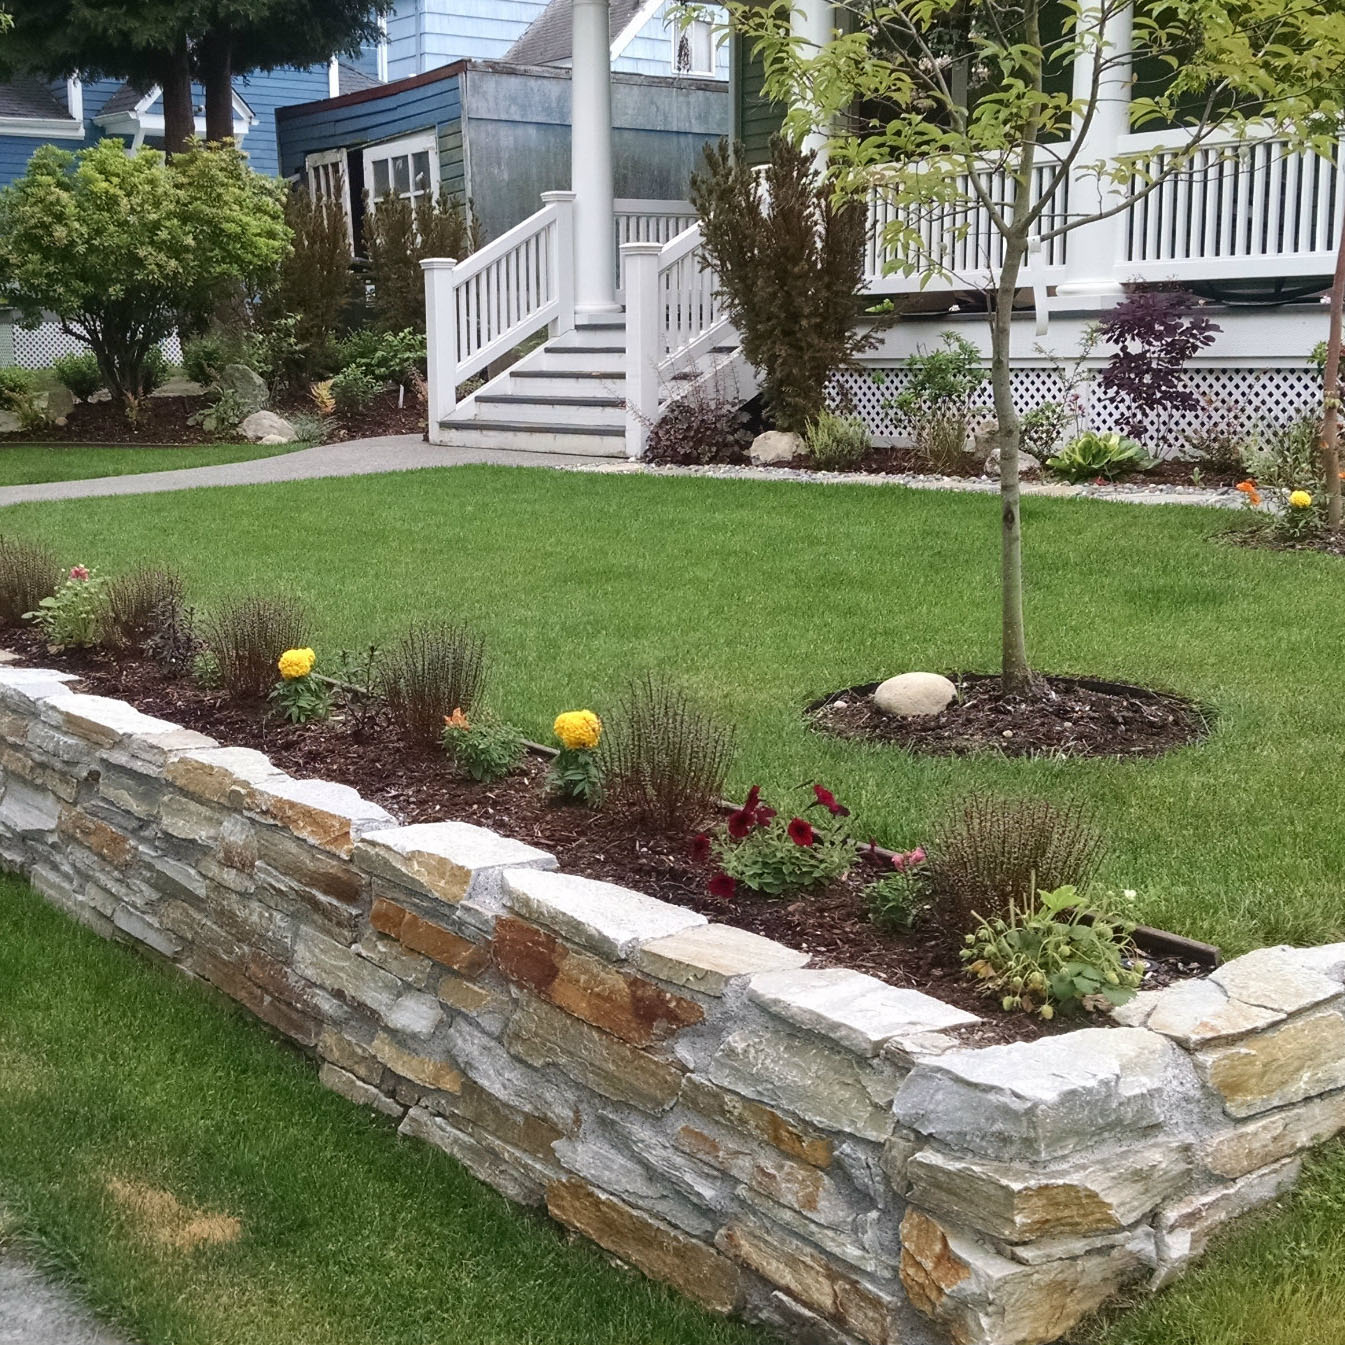 stone retaining wall in front yard landscaping